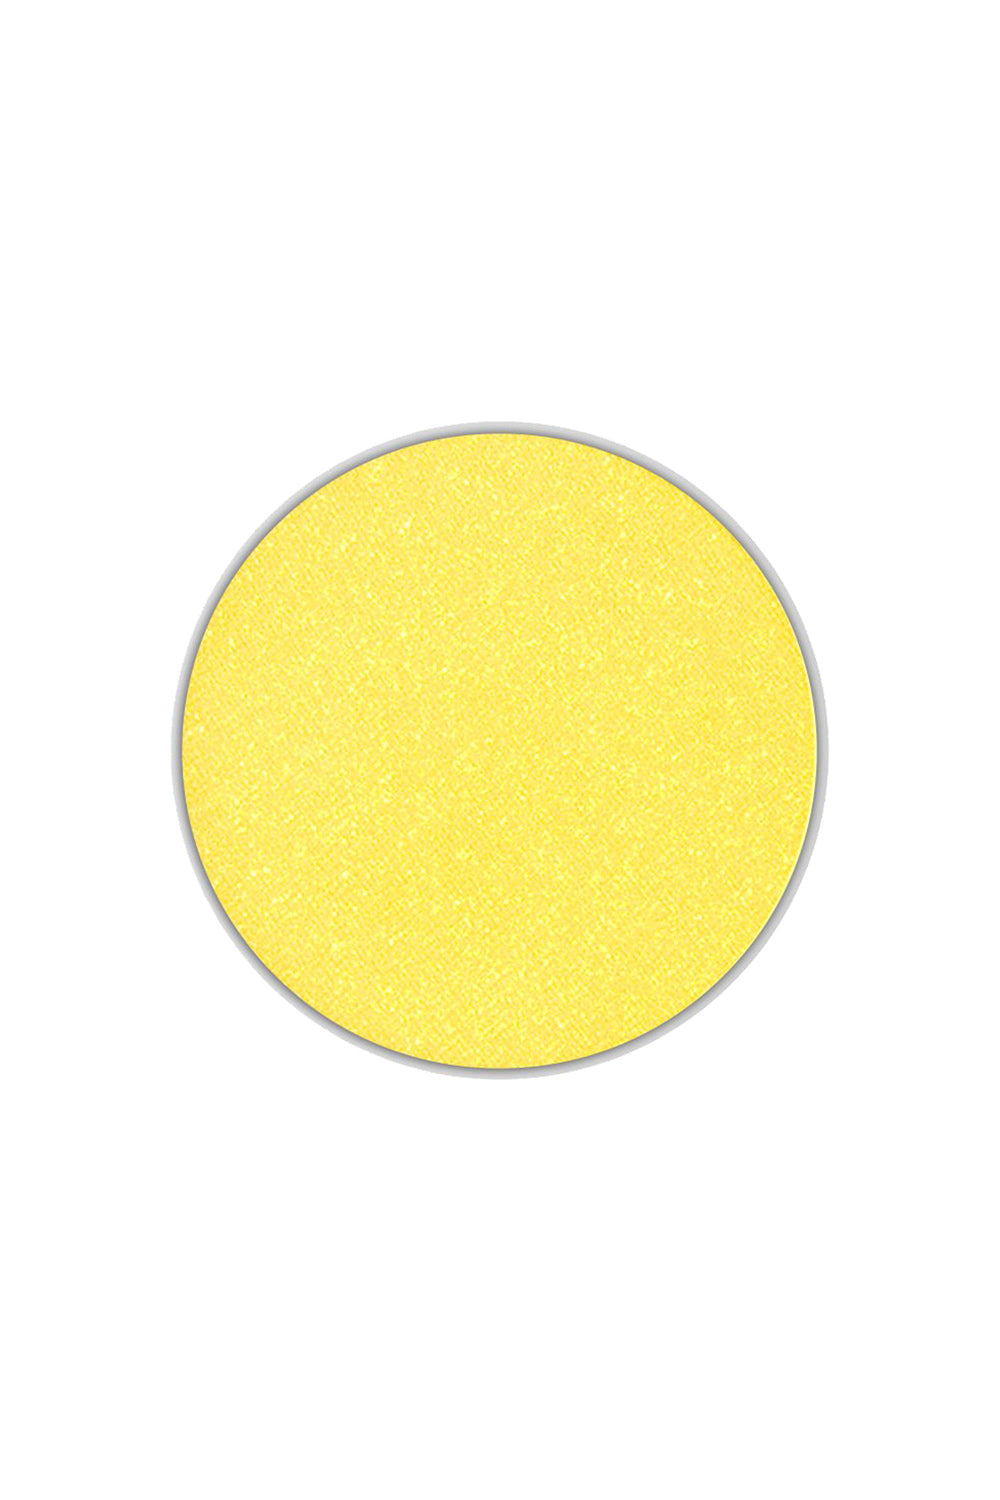 Lemon Zest - Type 4 Eyeshadow Pan